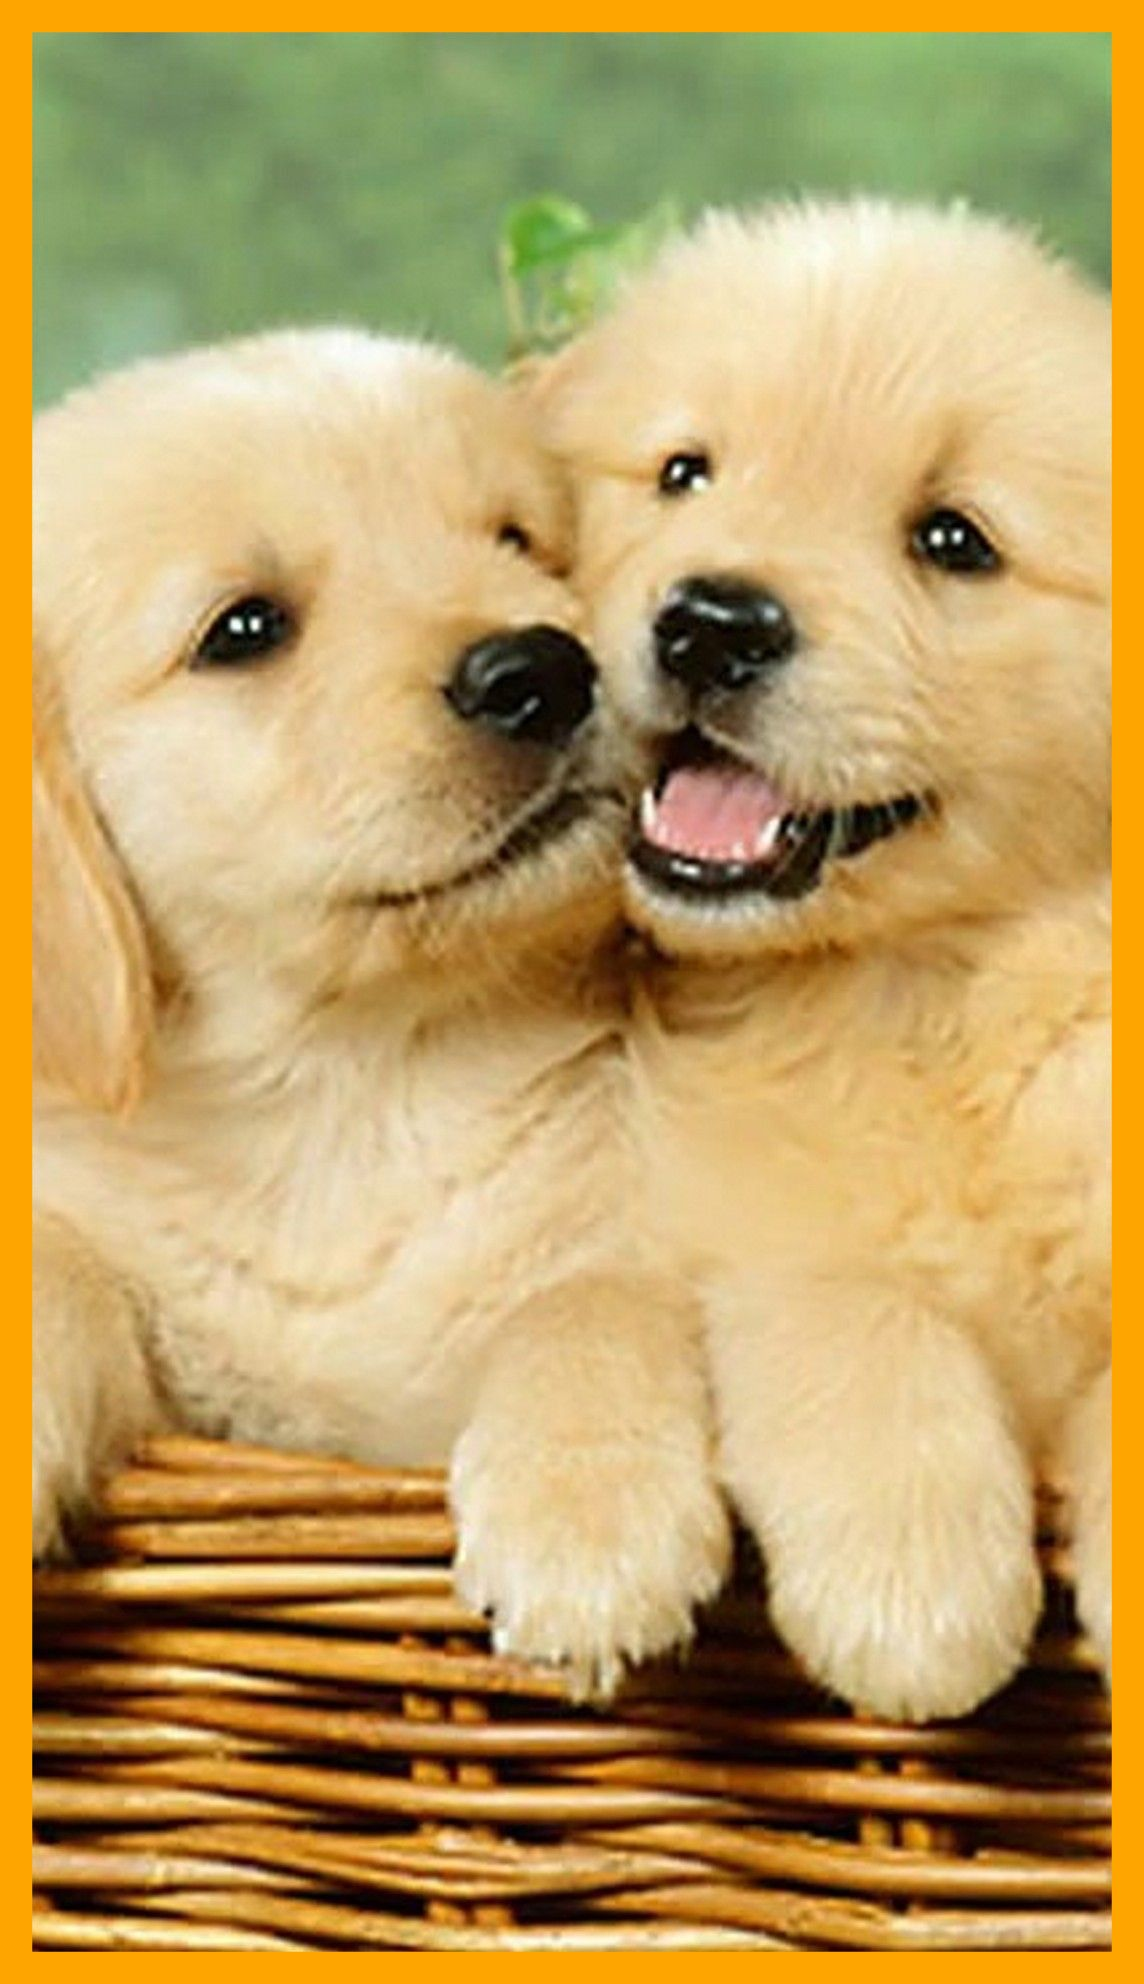 Pin by Fares on Dog wallpaper iphone Dog wallpaper iphone Puppy 1144x1984